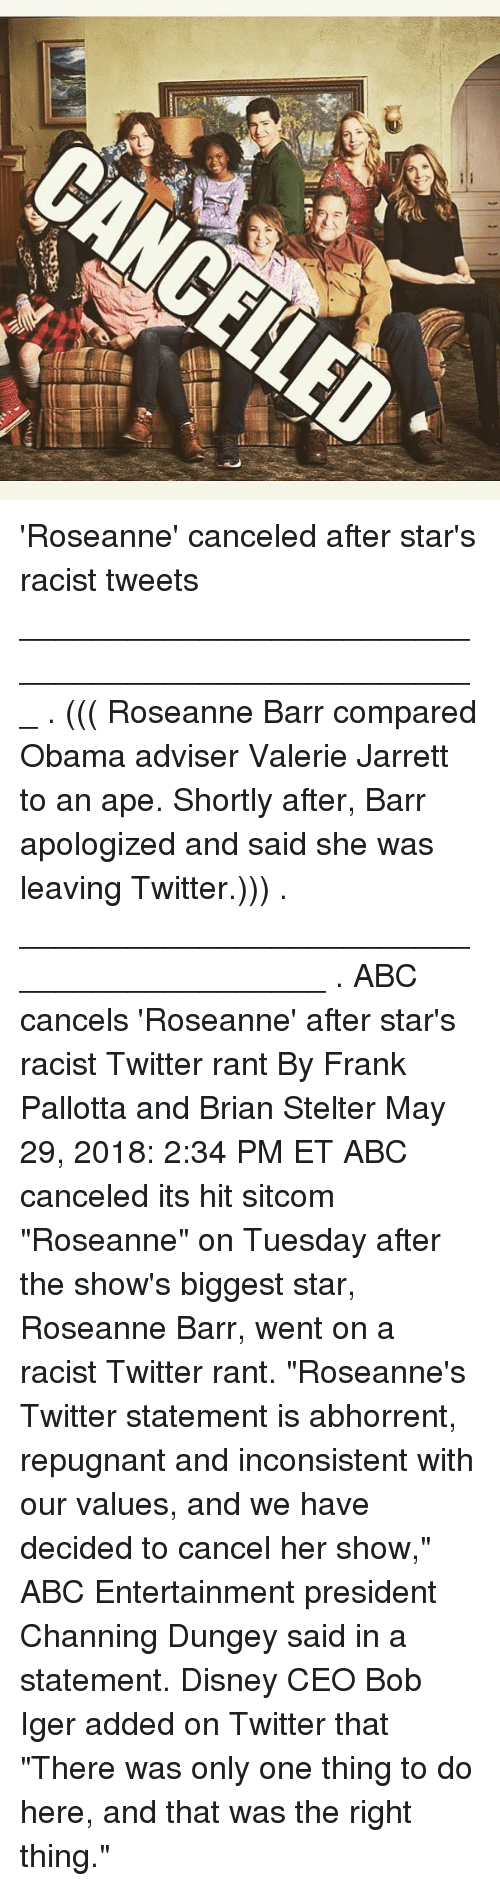 """Abc, Disney, and Memes: 'Roseanne' canceled after star's racist tweets ___________________________________________________ . ((( Roseanne Barr compared Obama adviser Valerie Jarrett to an ape. Shortly after, Barr apologized and said she was leaving Twitter.))) . __________________________________________ . ABC cancels 'Roseanne' after star's racist Twitter rant By Frank Pallotta and Brian Stelter May 29, 2018: 2:34 PM ET ABC canceled its hit sitcom """"Roseanne"""" on Tuesday after the show's biggest star, Roseanne Barr, went on a racist Twitter rant. """"Roseanne's Twitter statement is abhorrent, repugnant and inconsistent with our values, and we have decided to cancel her show,"""" ABC Entertainment president Channing Dungey said in a statement. Disney CEO Bob Iger added on Twitter that """"There was only one thing to do here, and that was the right thing."""""""